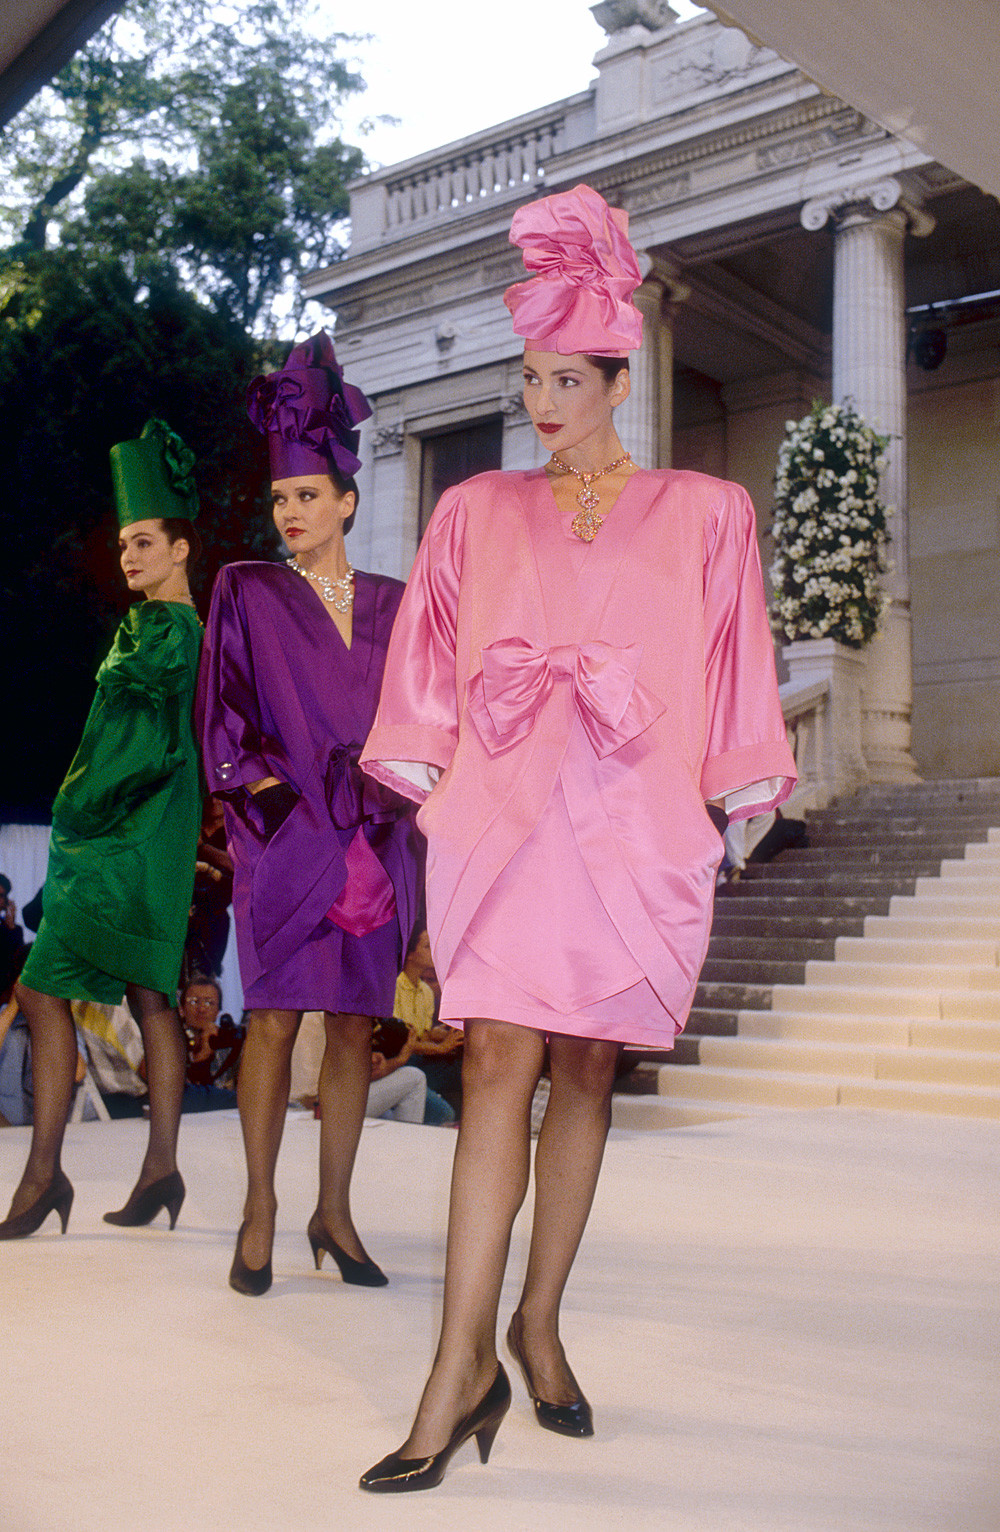 Three fashion models wearing haute couture cocktail dresses and hats by Slava Zaitsev (Autumn-Winter 1988-1989 fashion show in Paris)